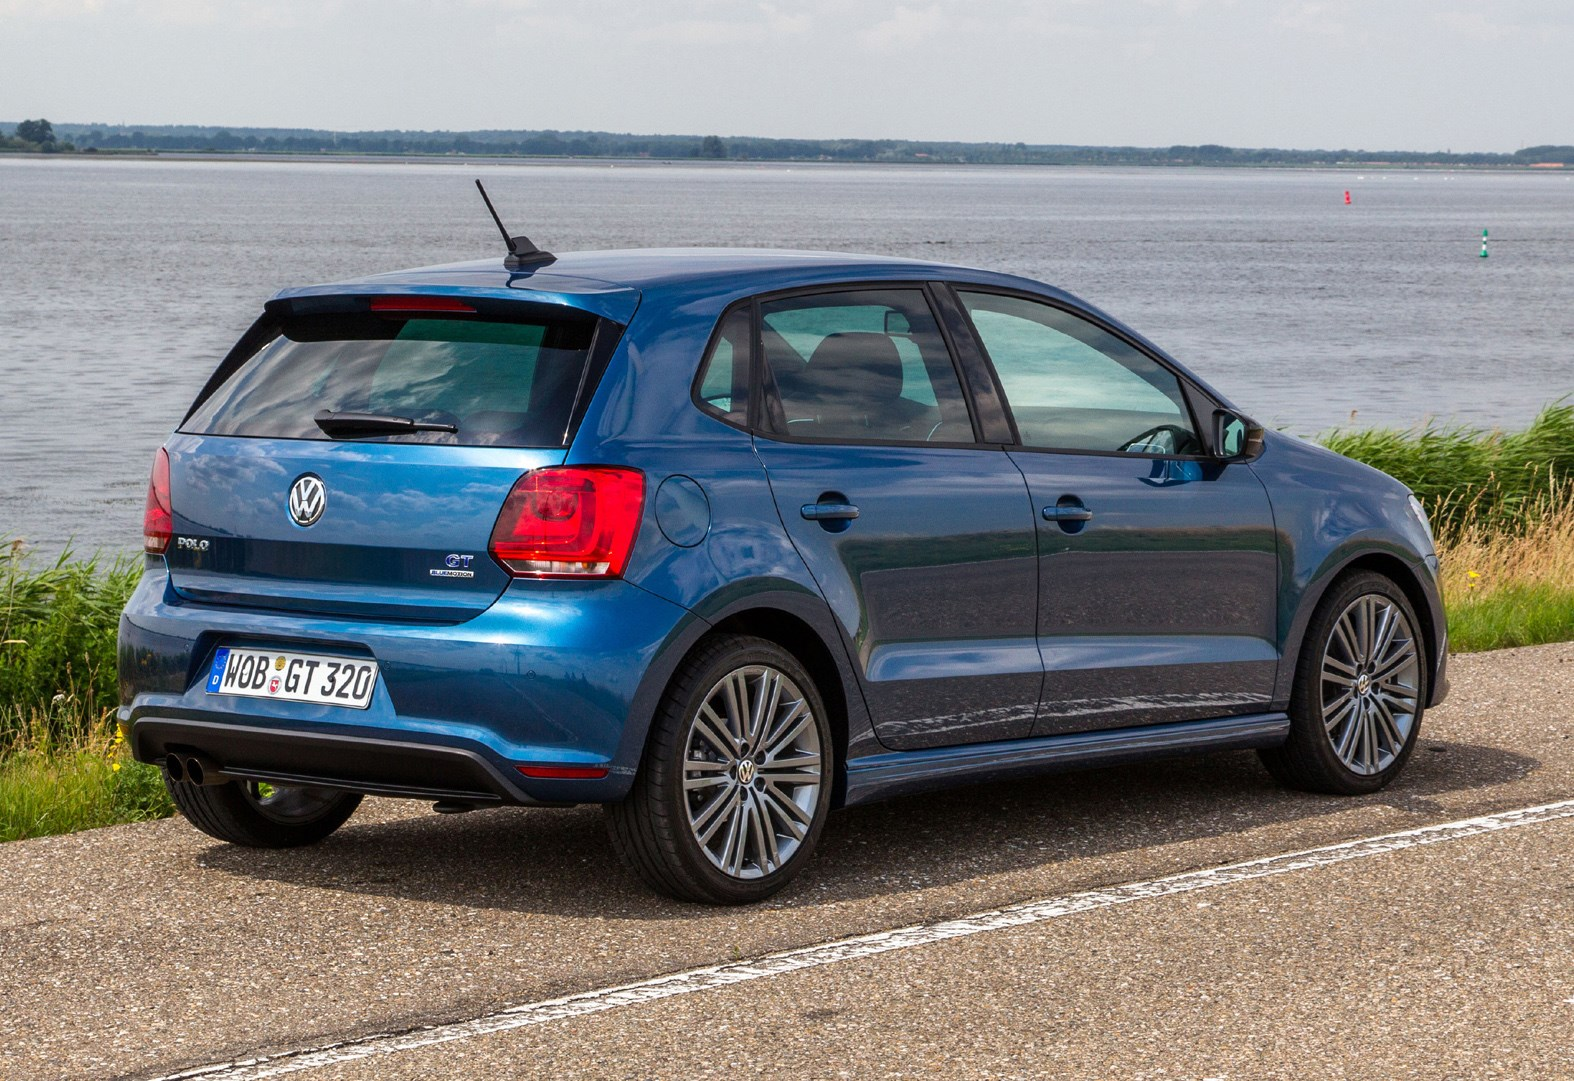 volkswagen polo hatchback review parkers. Black Bedroom Furniture Sets. Home Design Ideas